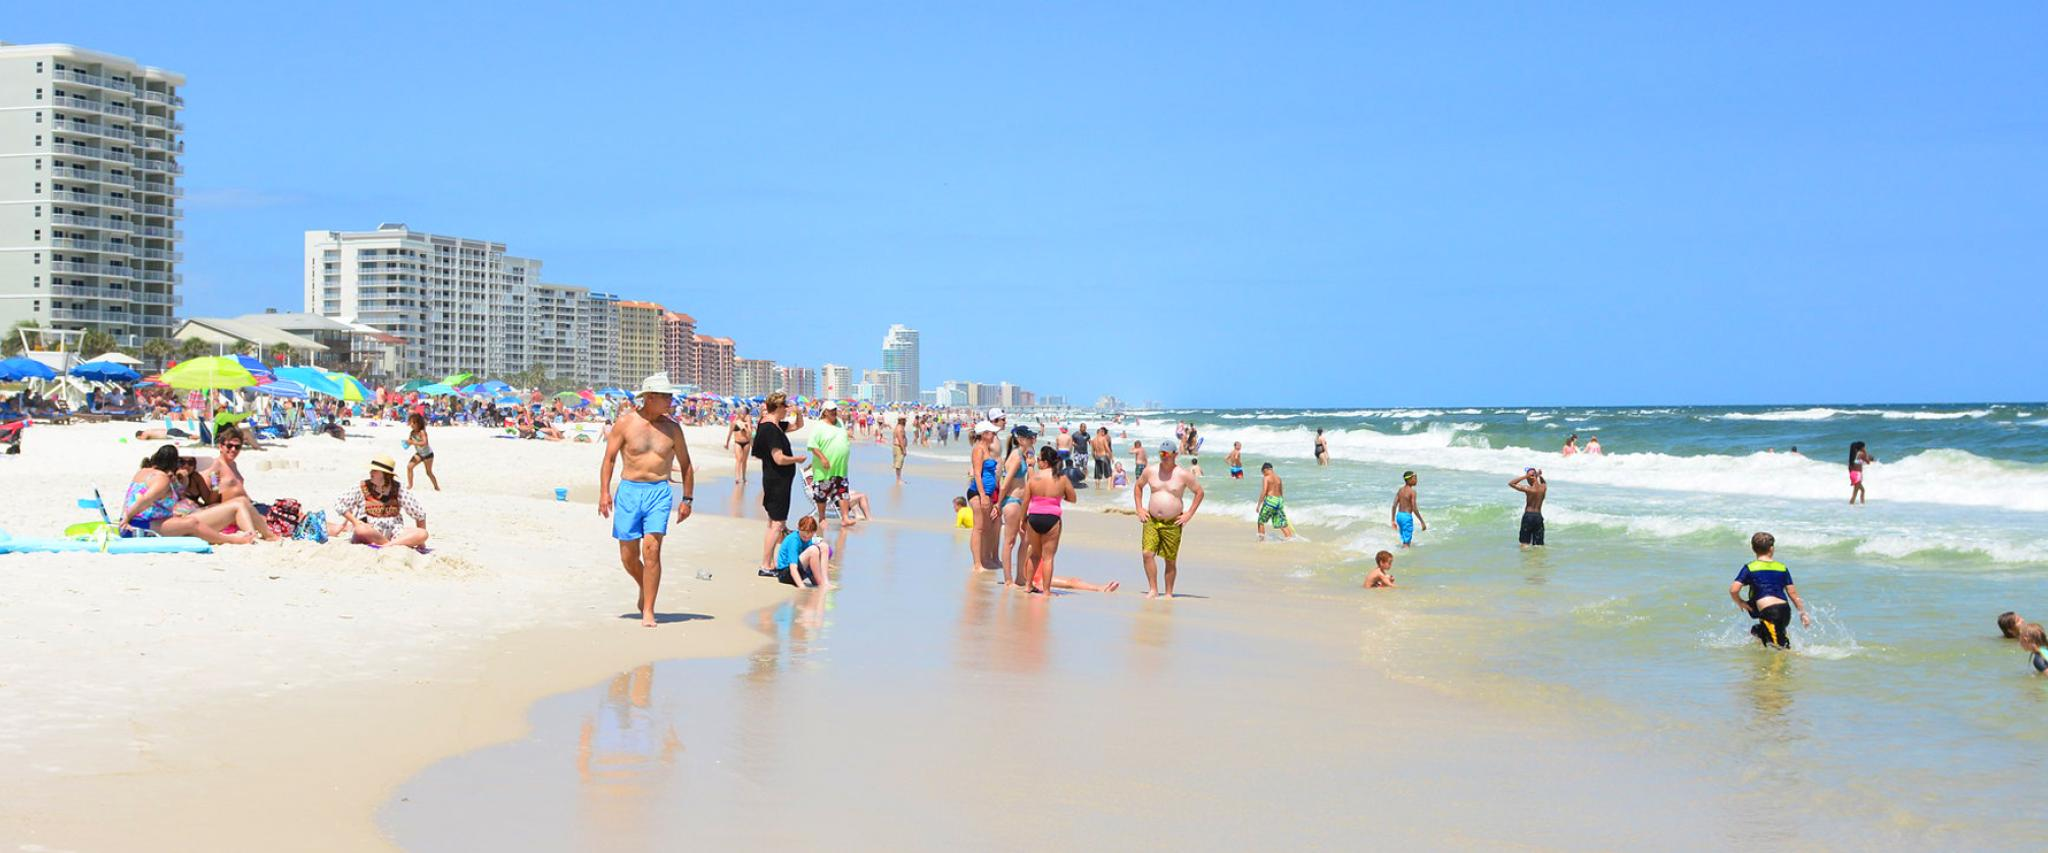 Beach goers enjoy Alabama's white sand beaches